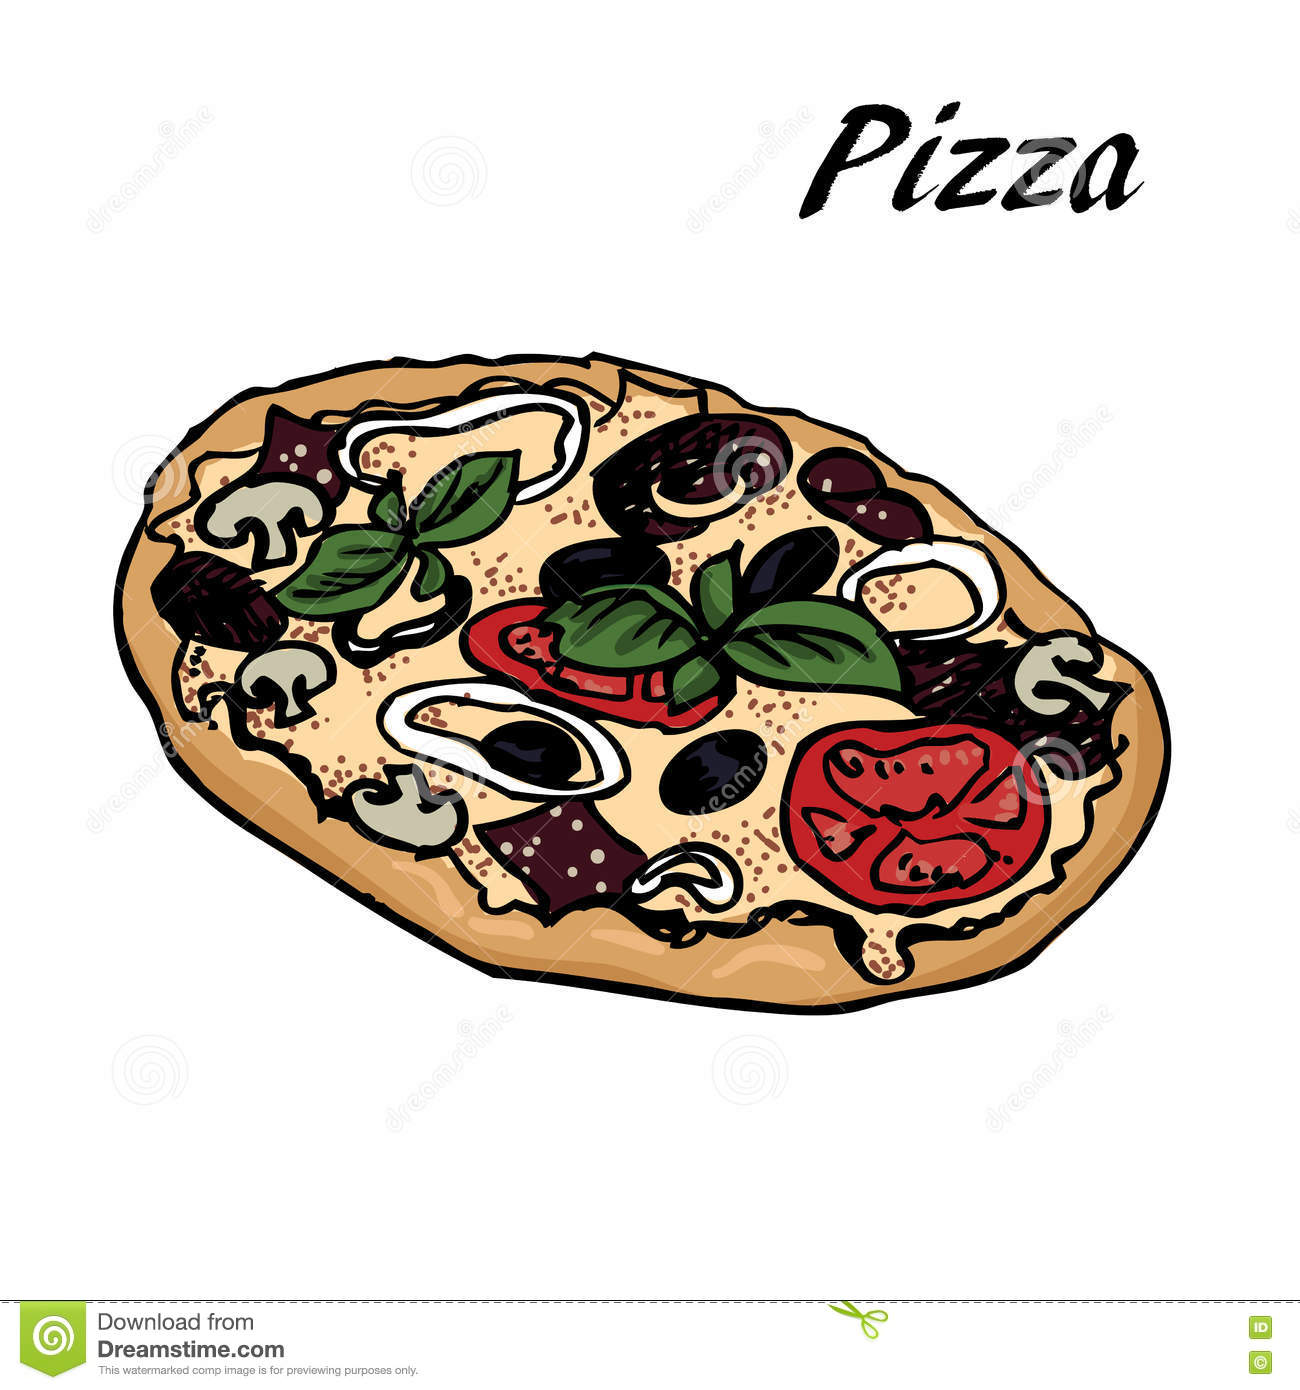 Pizza sketch 13 stock vector. Image of modern, doodle ...